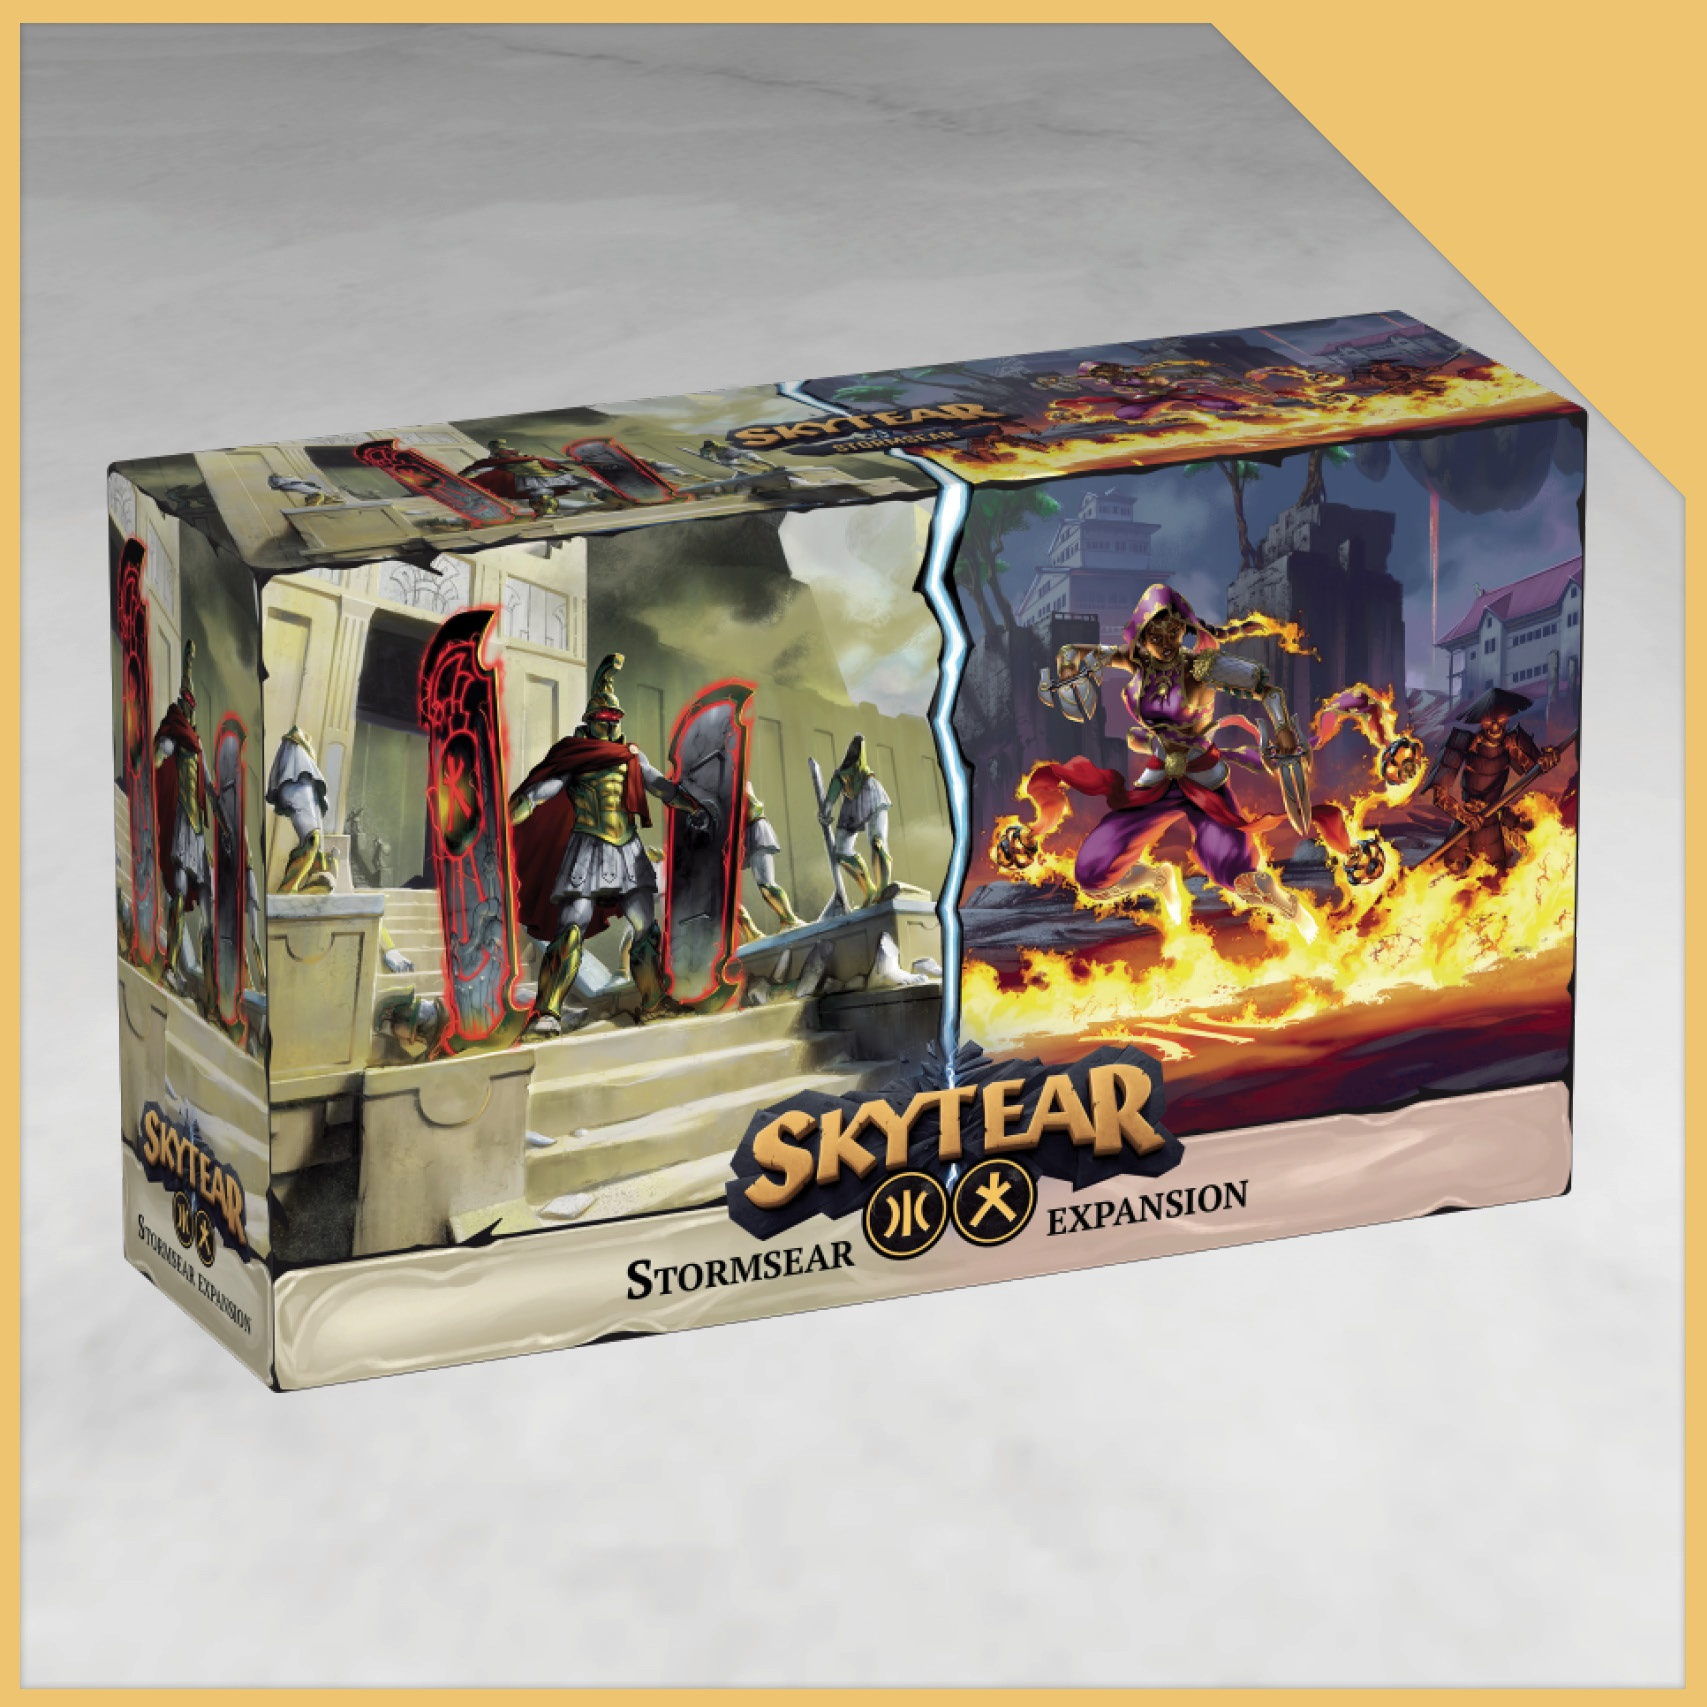 Skytear: Stormsear Expansion